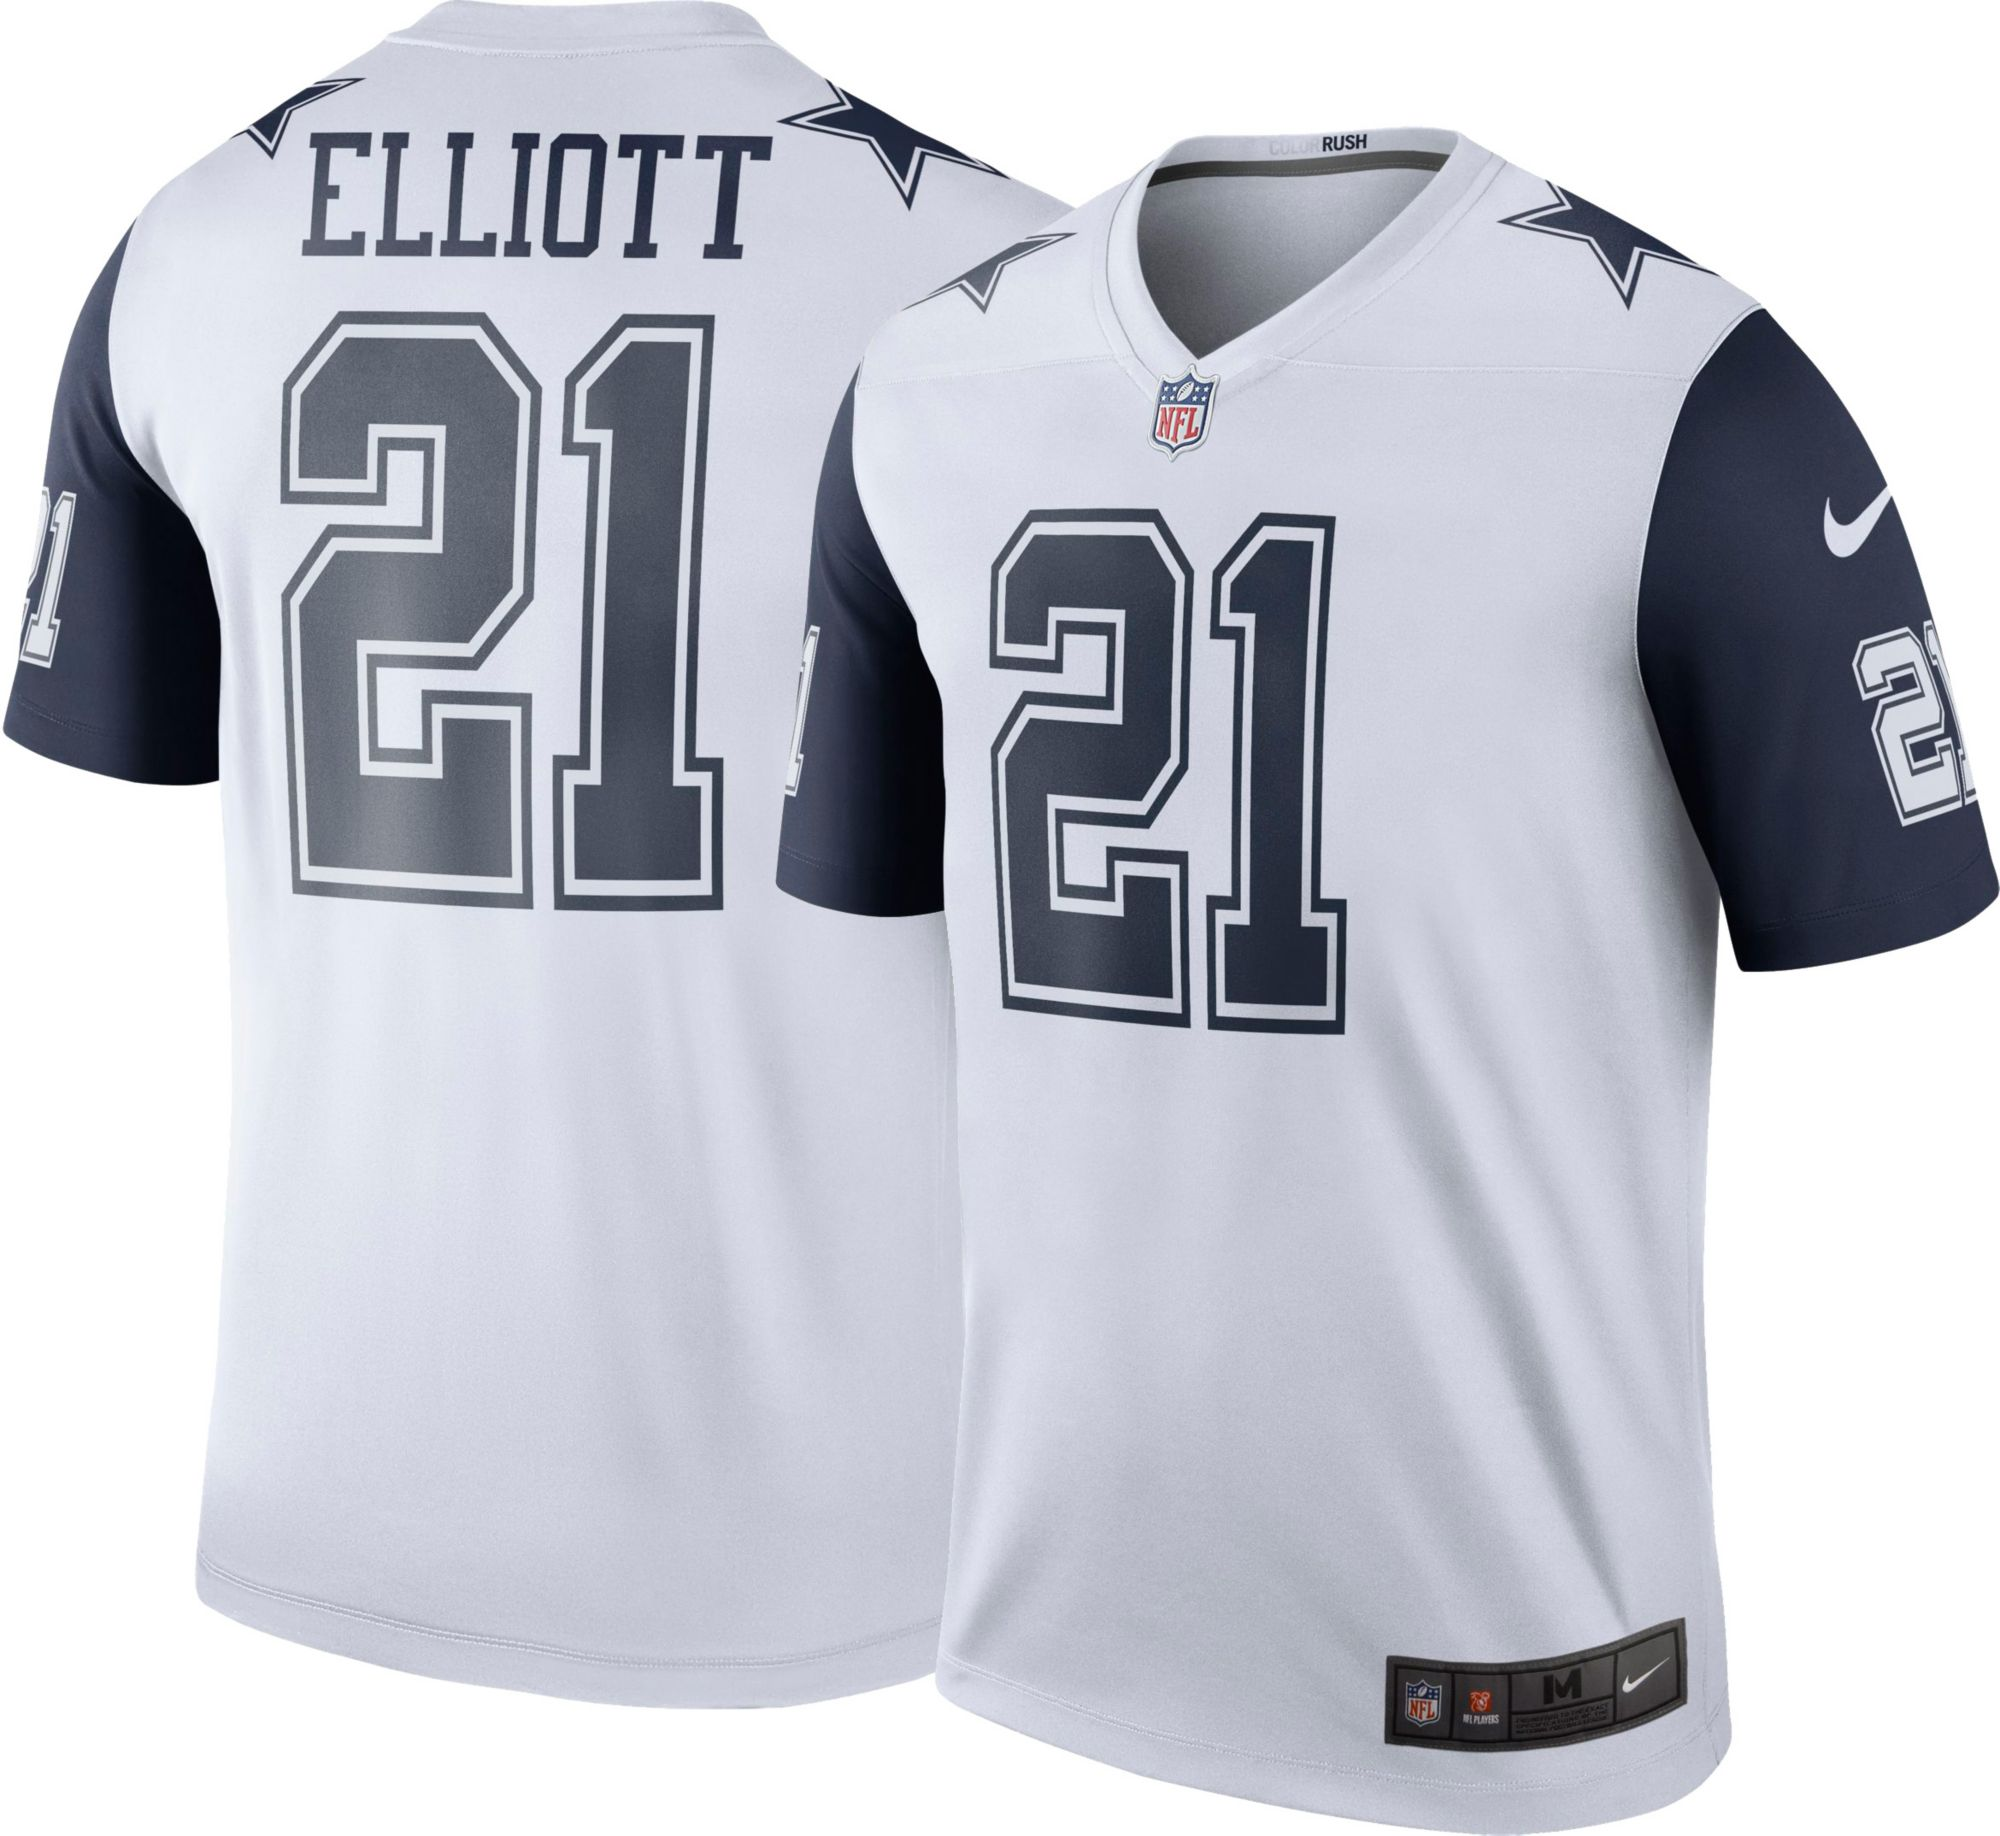 5t dallas cowboys jersey